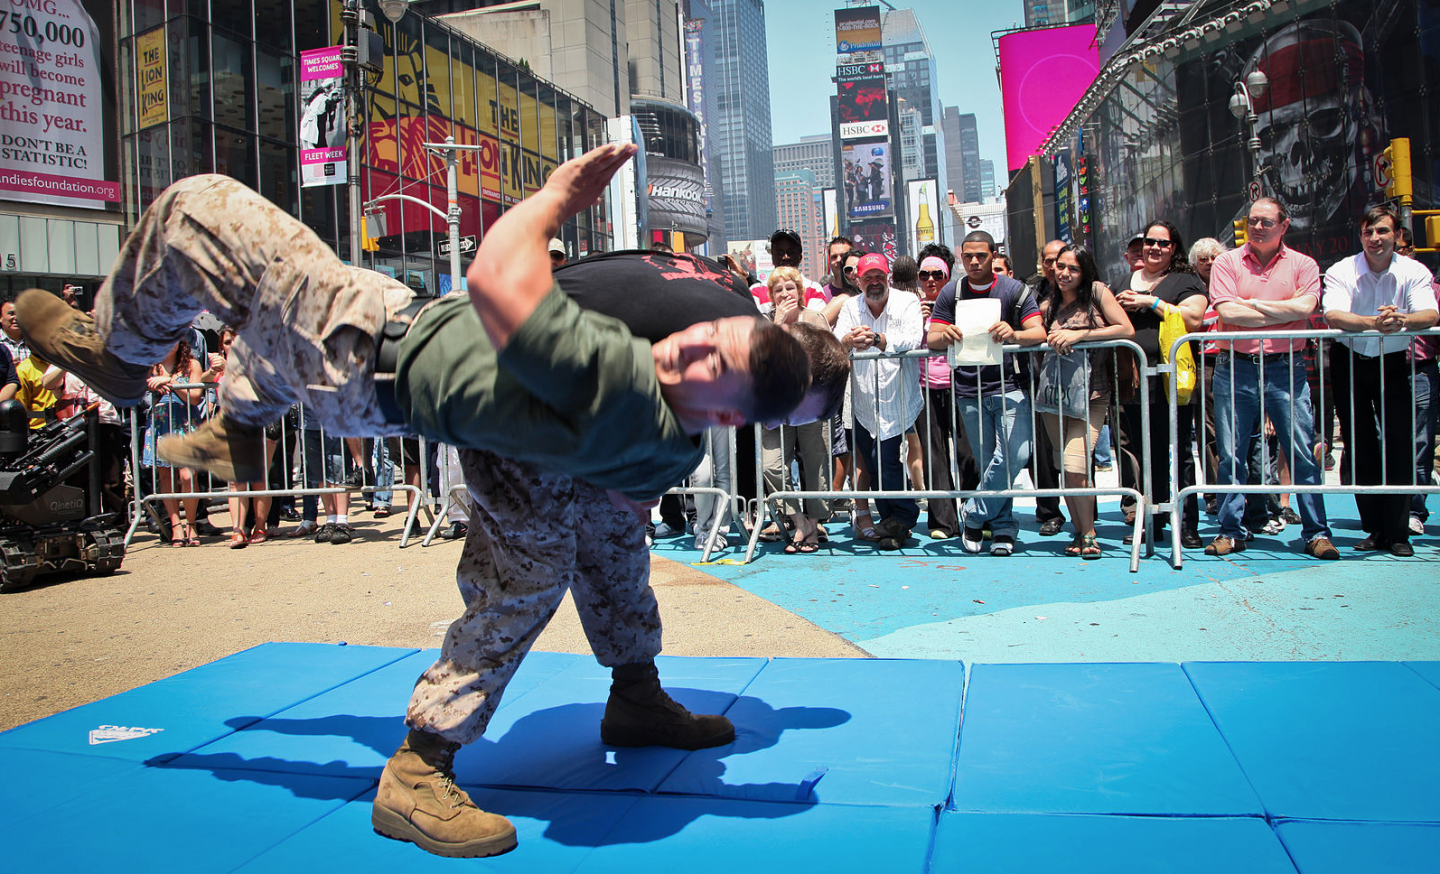 US Marine fighters demonstrate martial arts in Times Square, NY